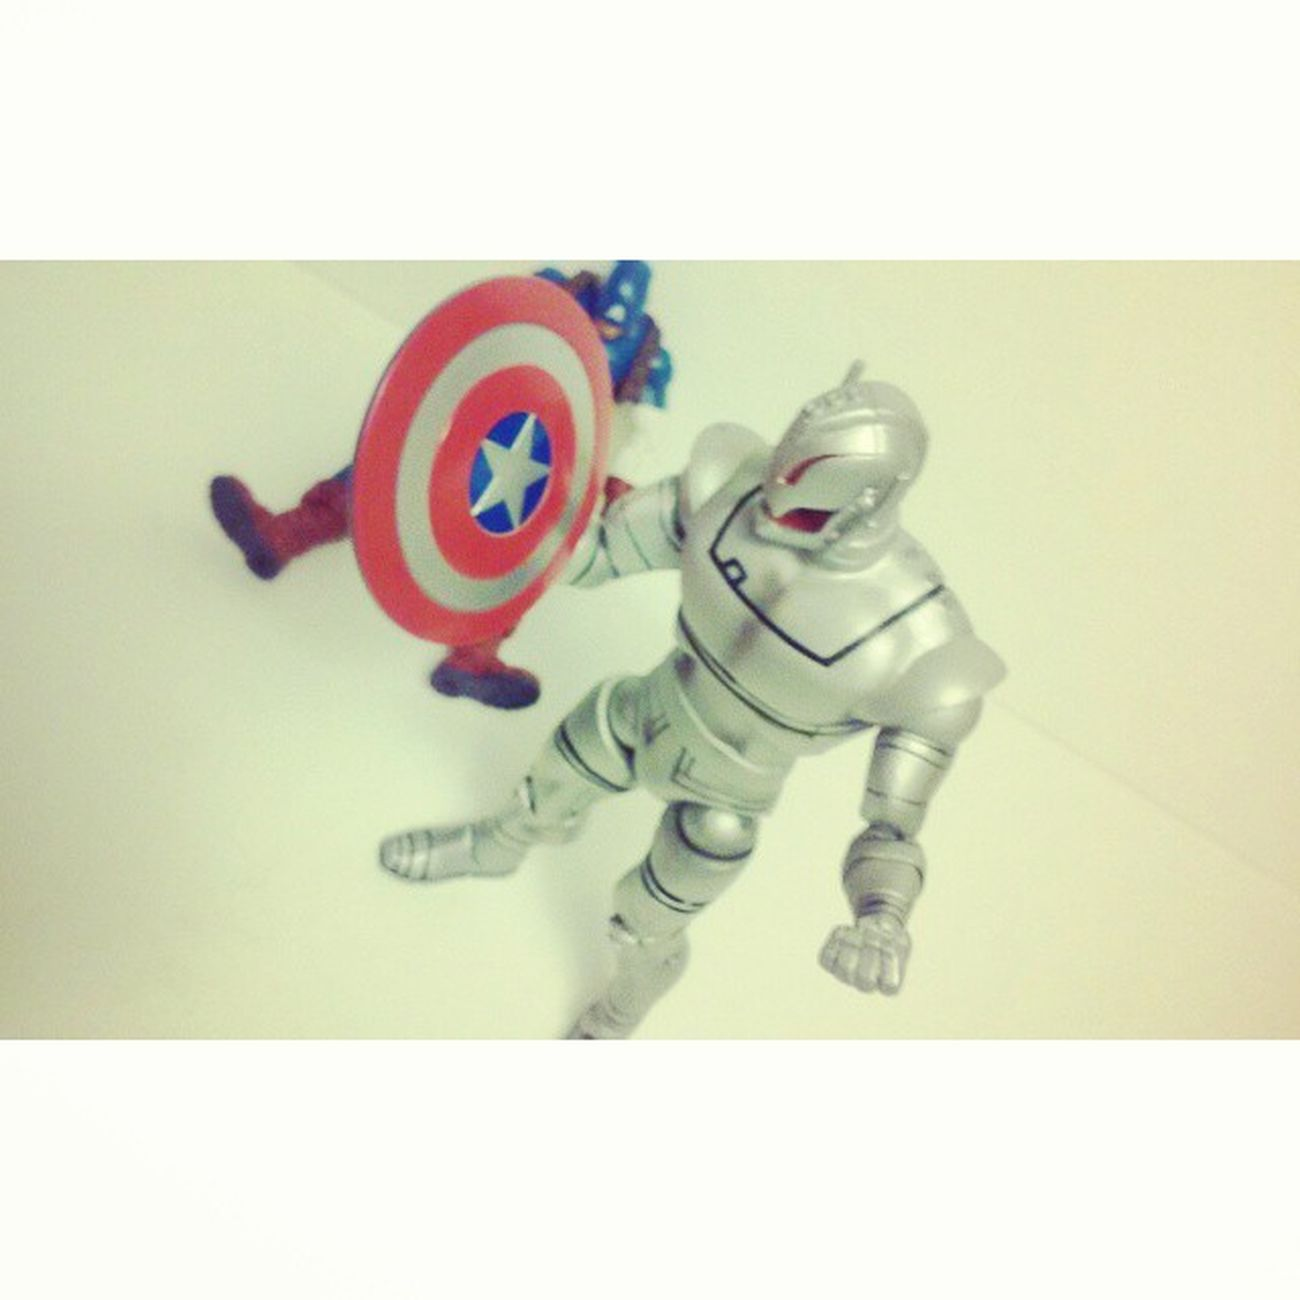 I will forge my new body of admantium.It will be a Age of ultron. Ultrons Marvelselect Avengers AgeOfUltron Captainmerica Steverodgers Marvel Mcu Diamondselect Sheild Villians Superheros Supervillians Beaten Mcu Marvel Nostringsonme Figures Marvellegend Hasbro Disney Figurecollecting Collector Figuretime